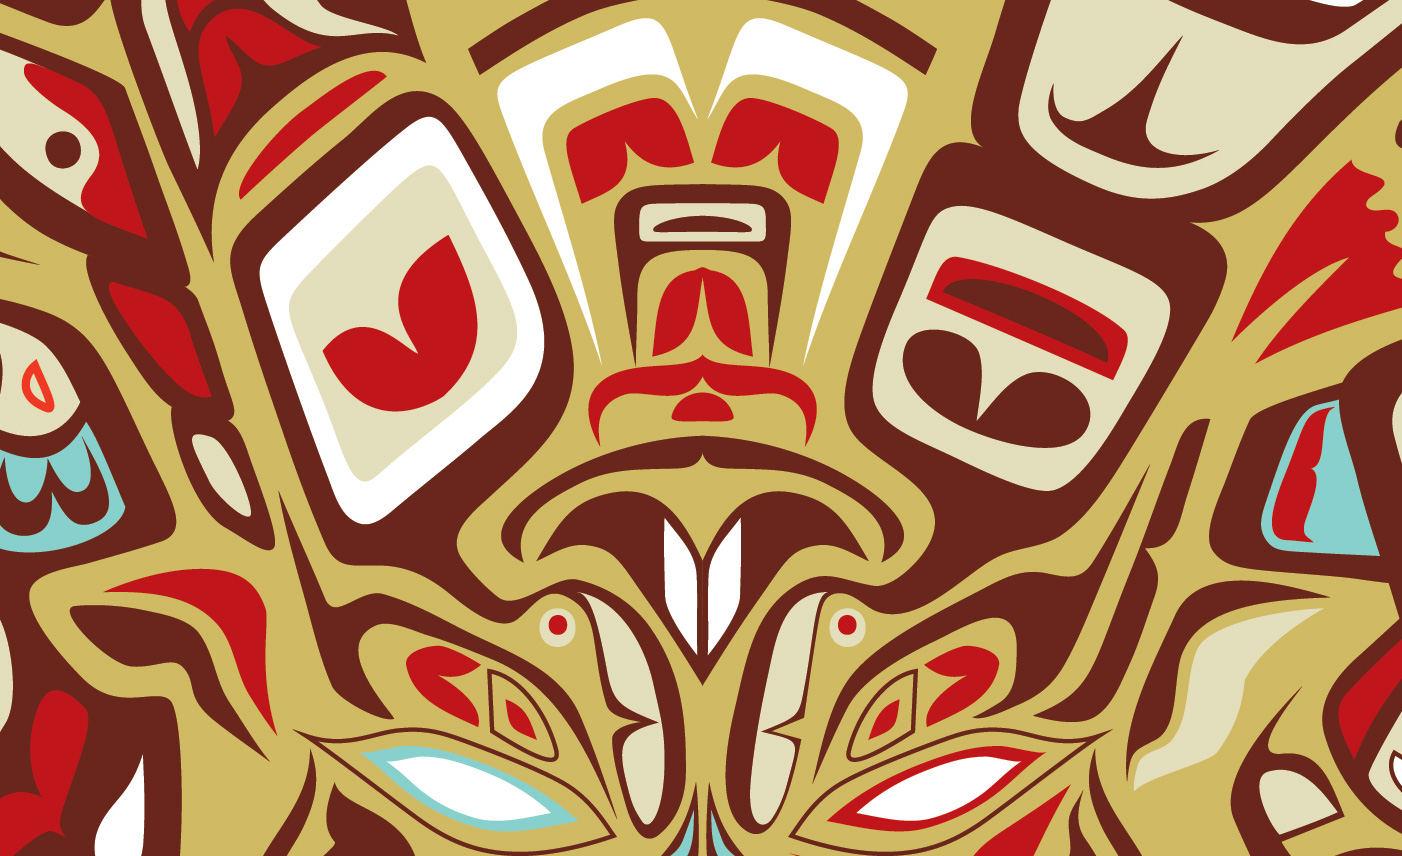 CHAMUKIN HAIDA / ILLUSTRATION